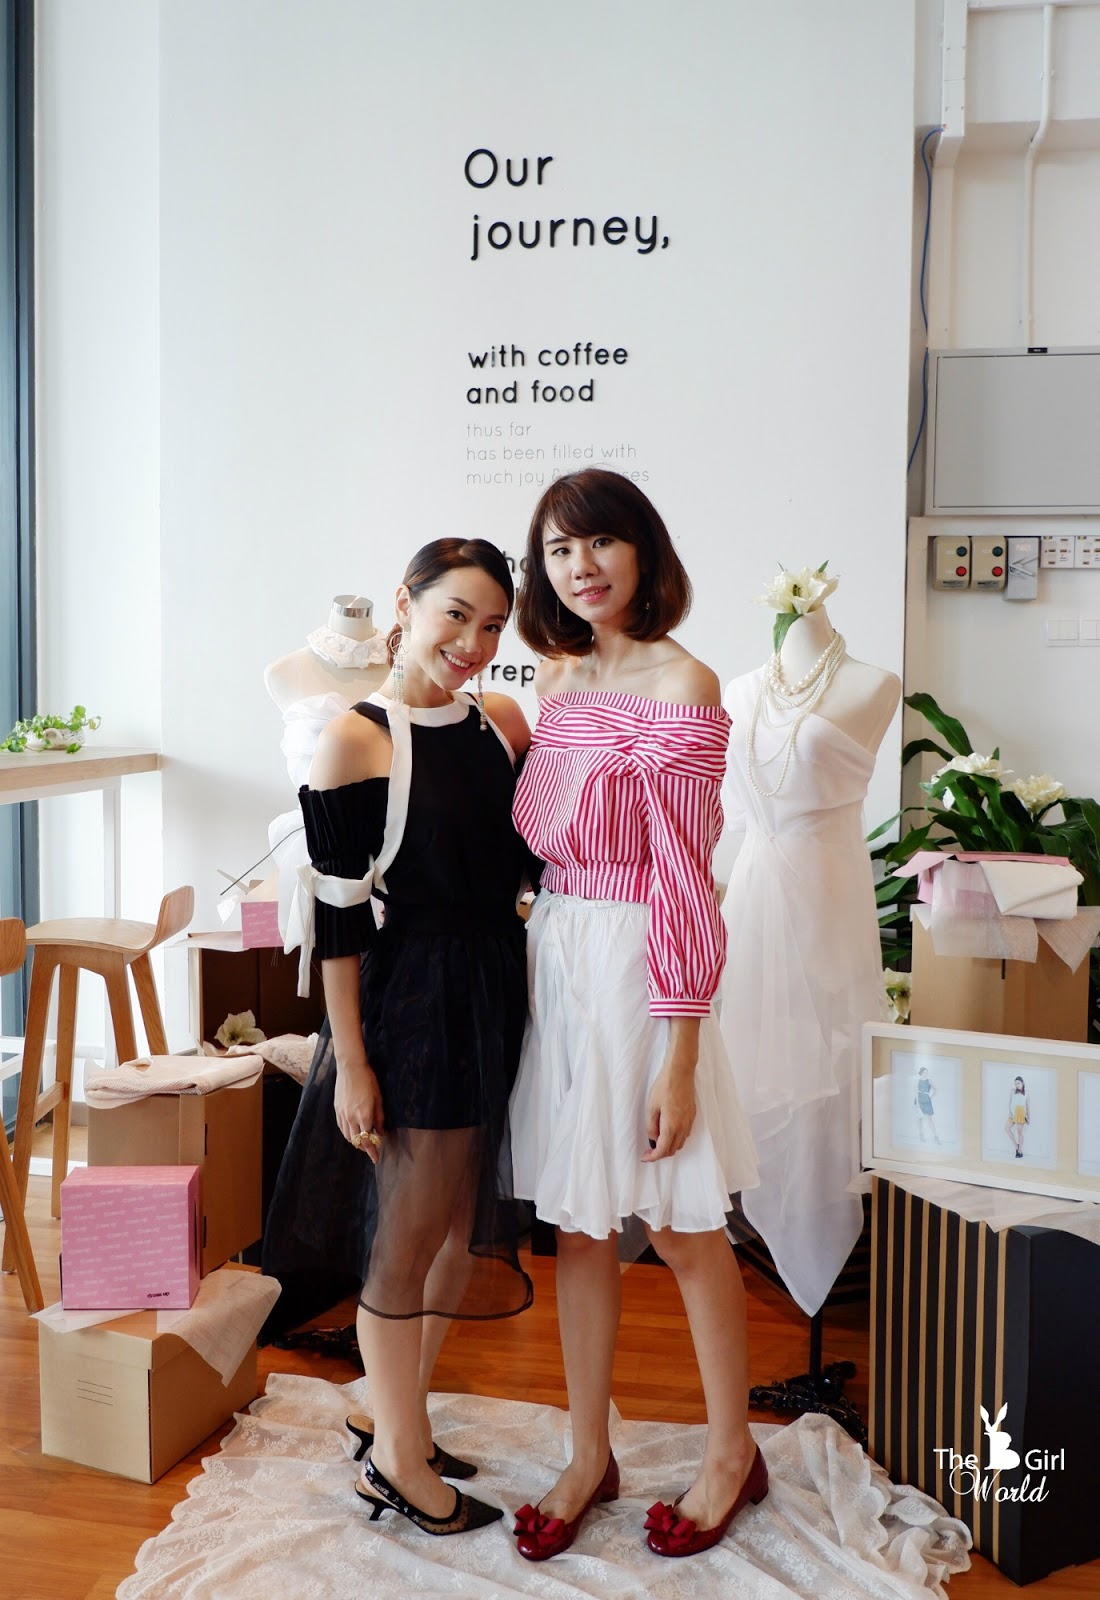 Dress up elements - It Was So Much Fun To Hang Out With My Blogger Friends Who Love To Dress Up And Met The Gorgeous Lady Louise Lau Who Is The Creator Of The Brand Dress Up